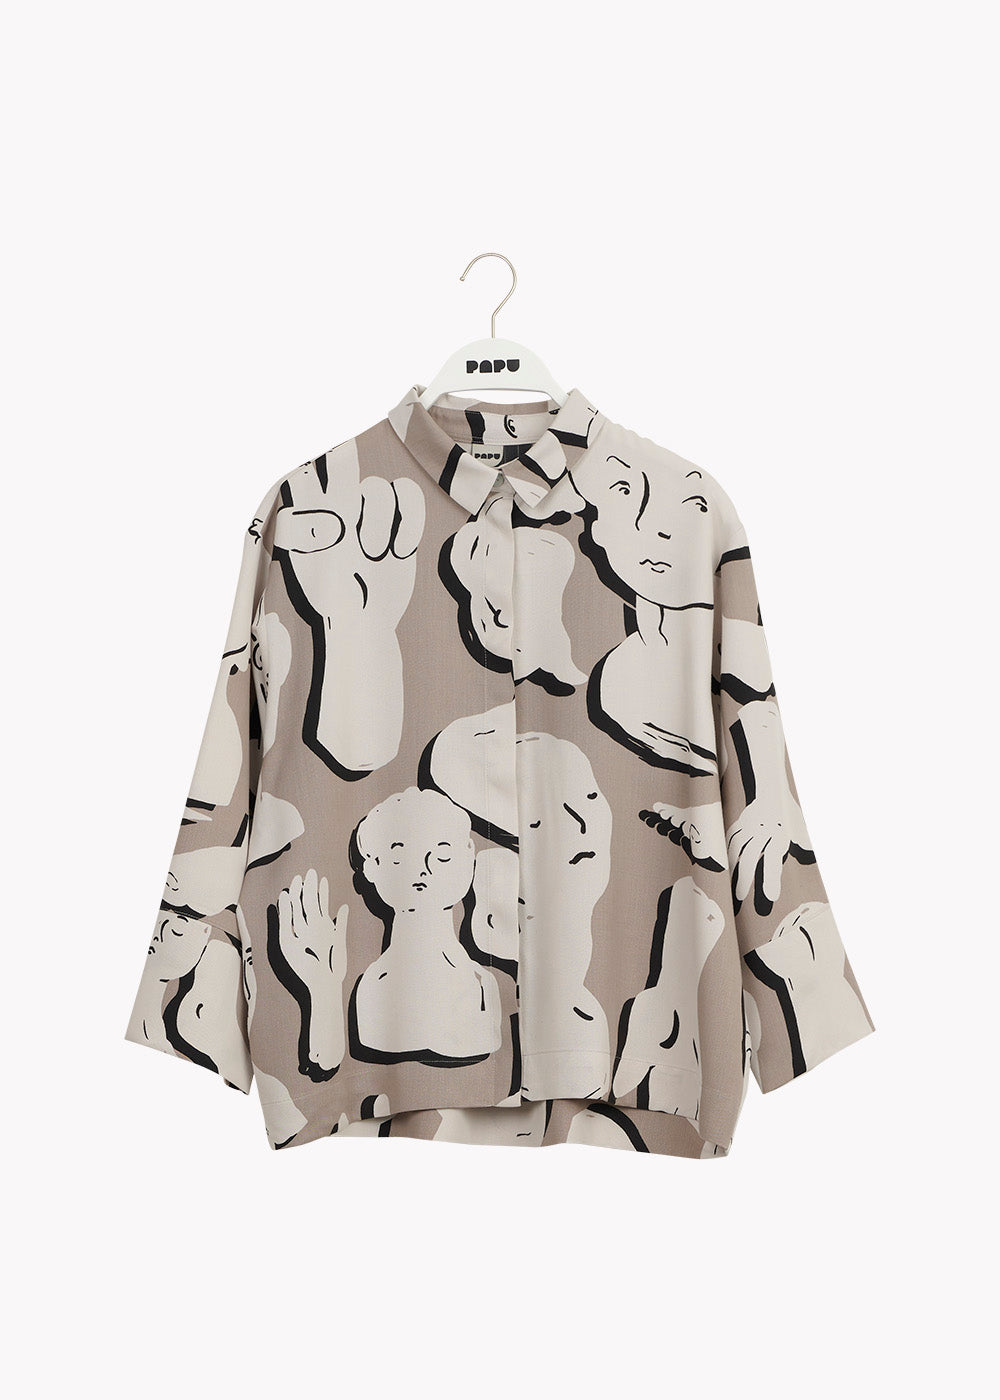 BOHEME SHIRT, Sculptures, Women